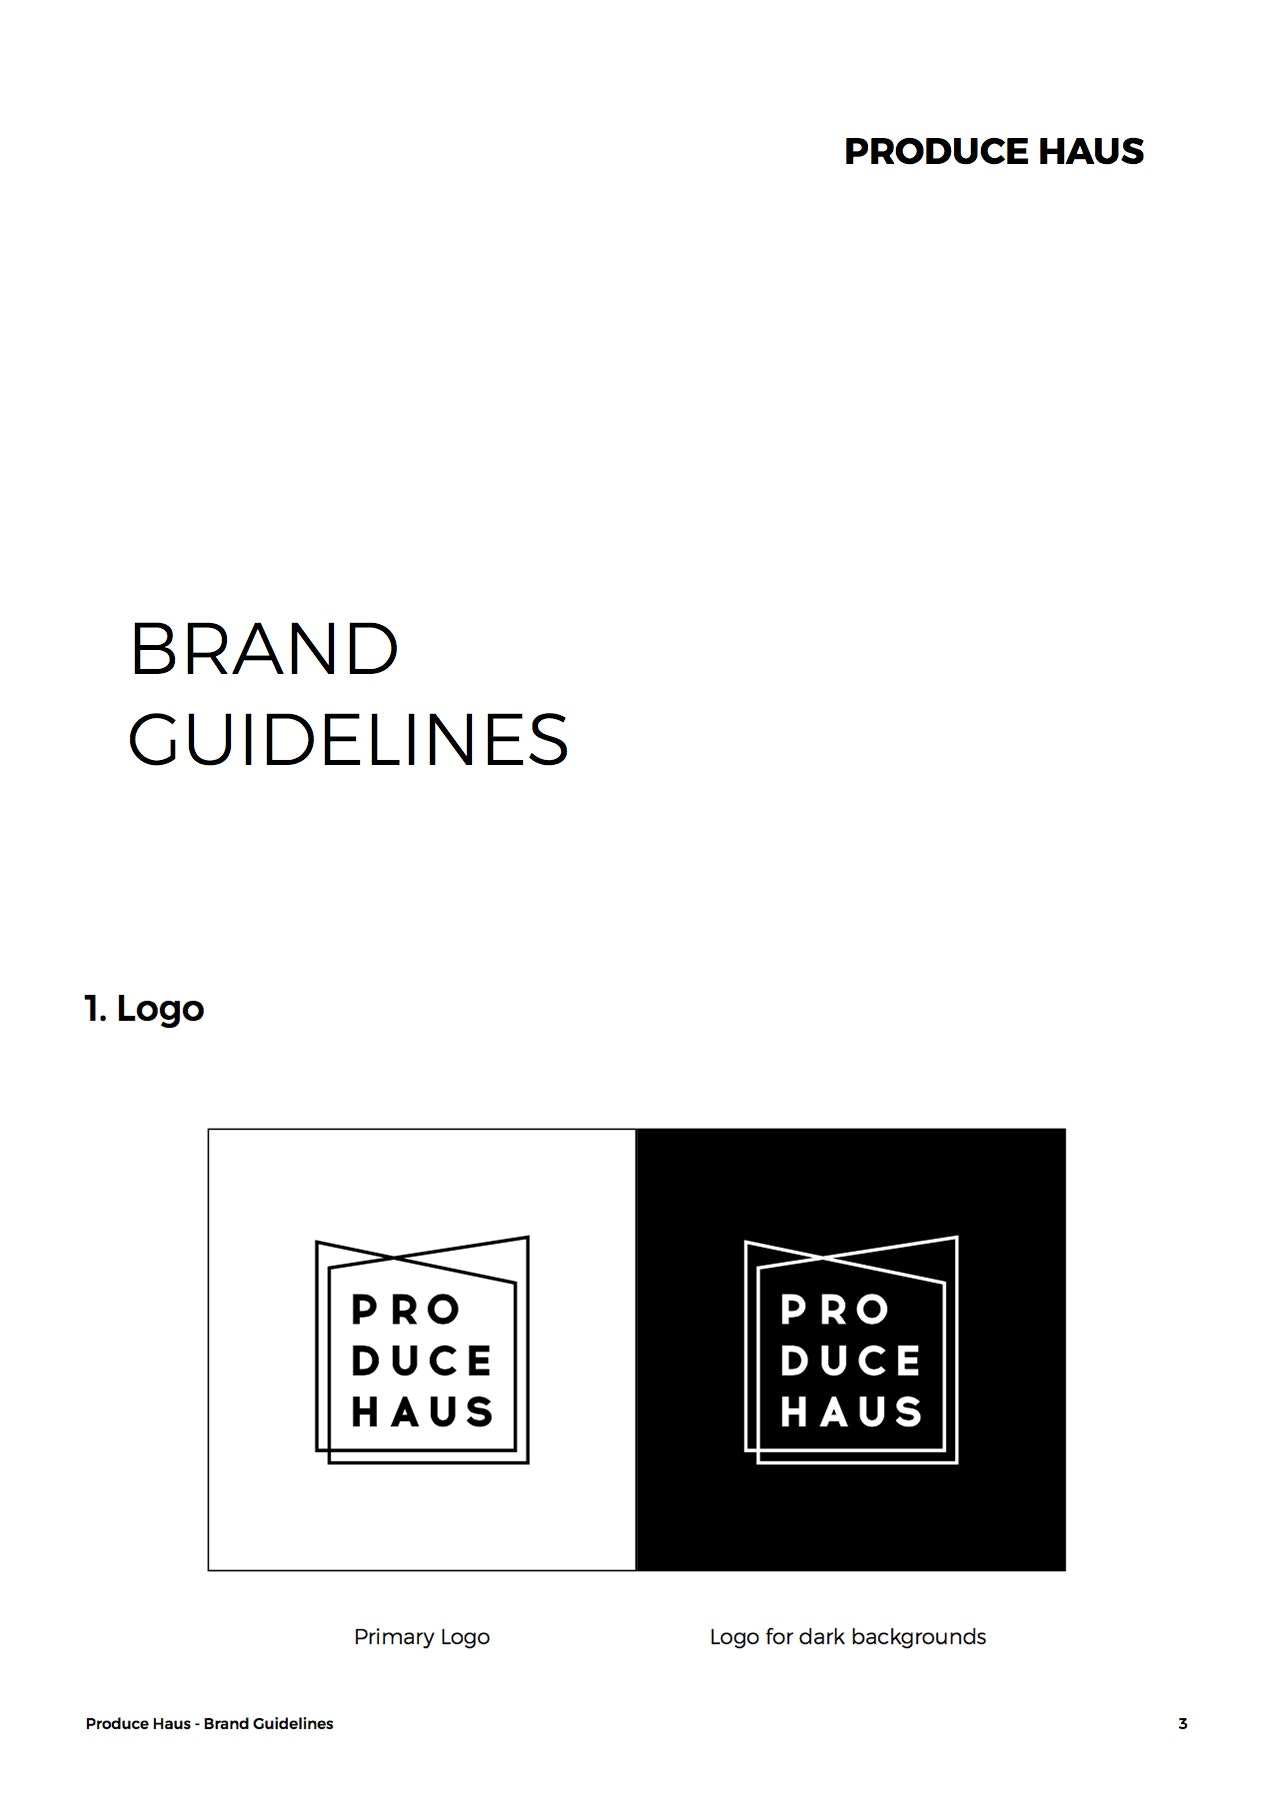 PRODUCE HAUS brand style guide